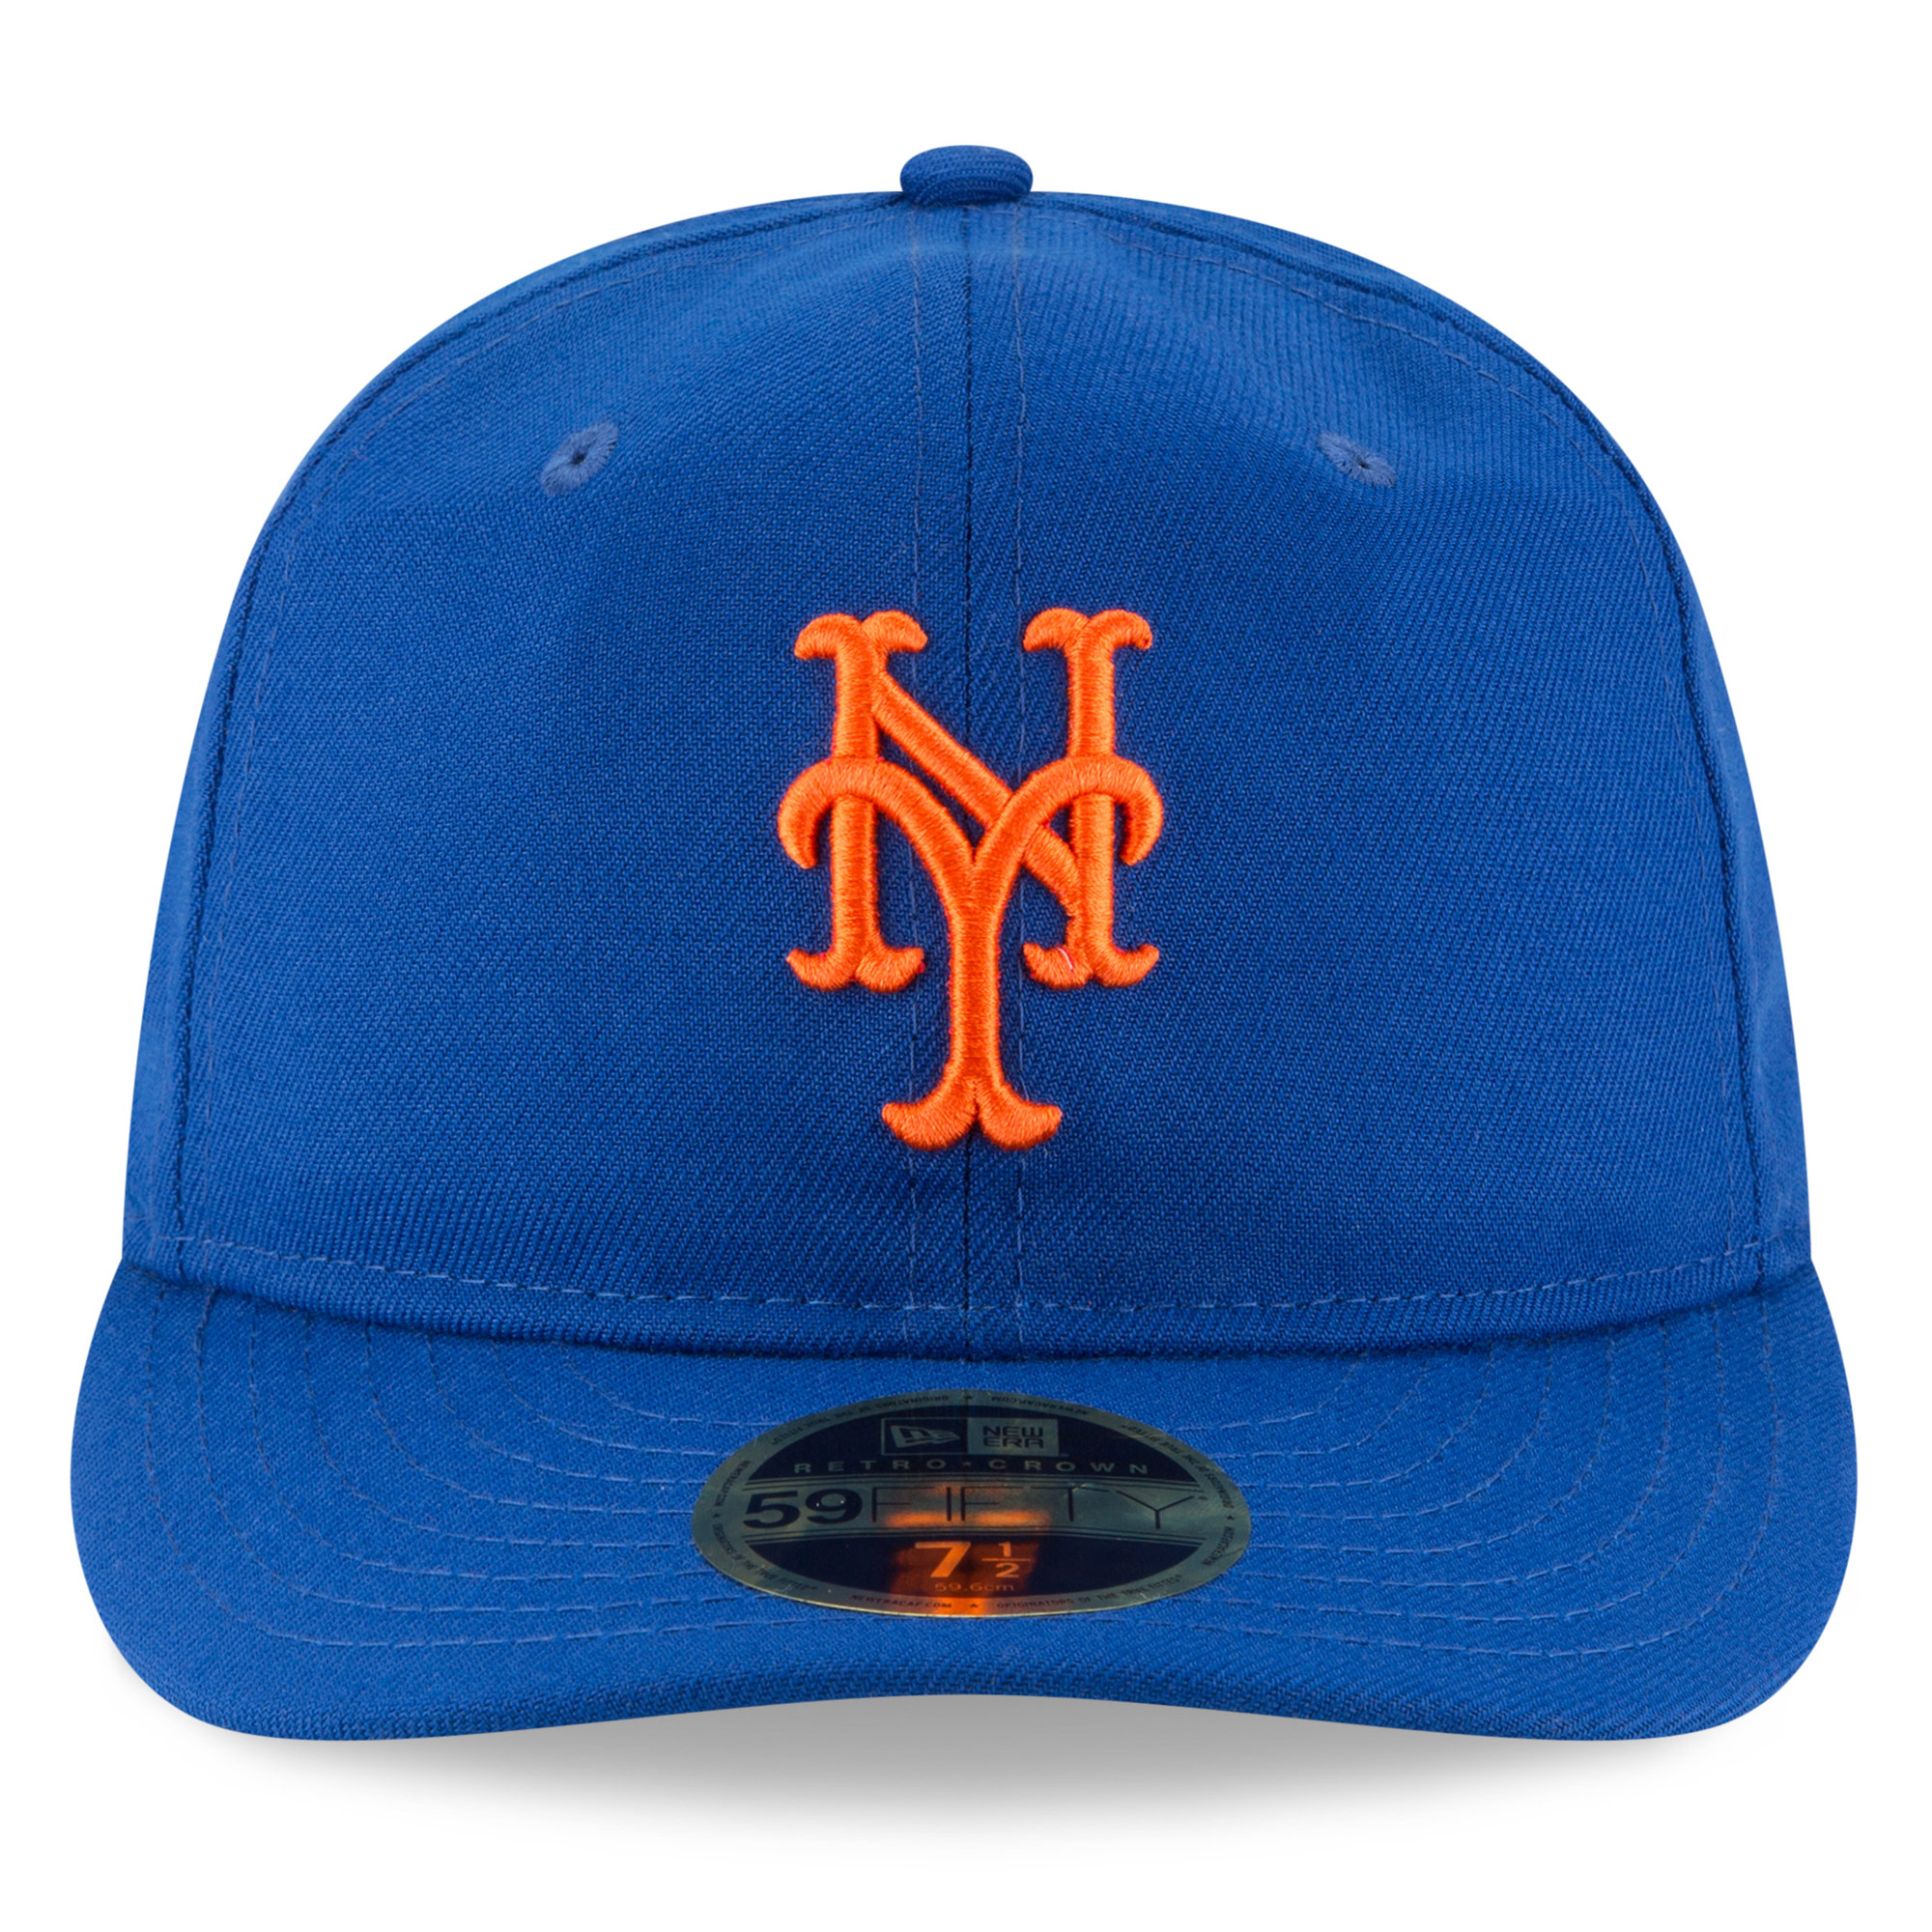 New York Mets New Era Fan Retro Low Profile 59FIFTY Fitted Hat - Royal -  Walmart.com a9f844775055